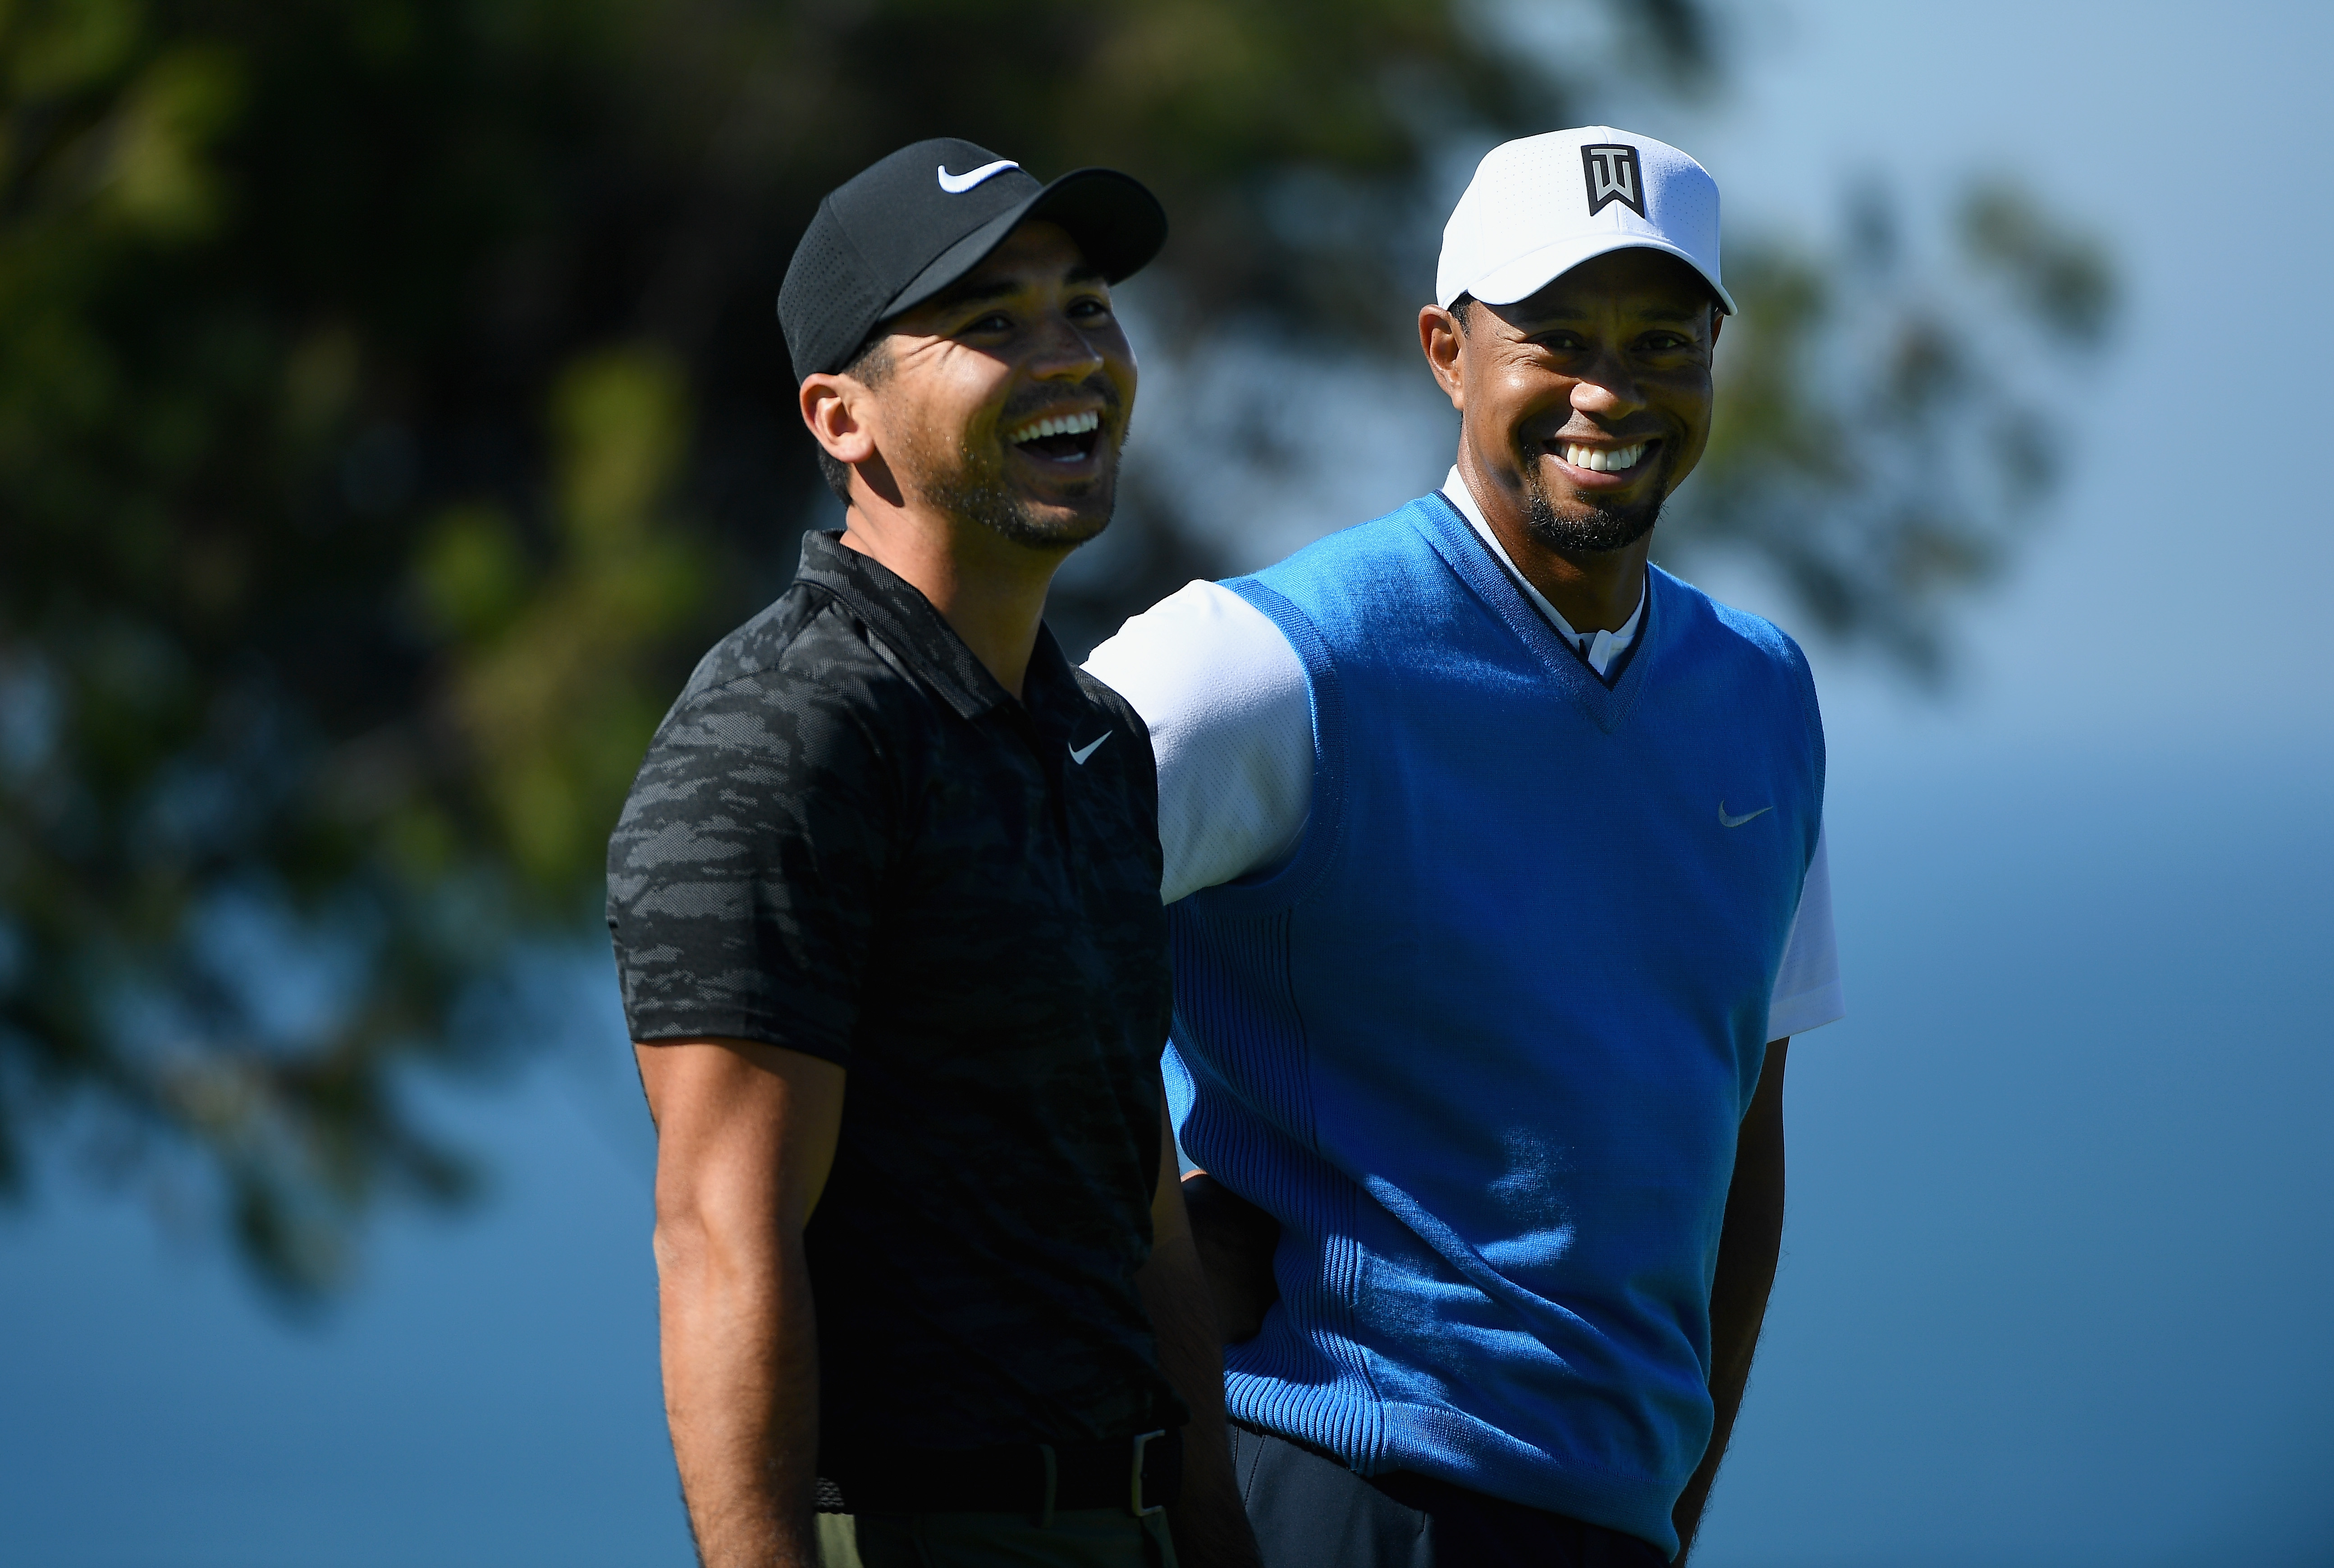 Tiger Woods 'feeling best he has in years' - Day